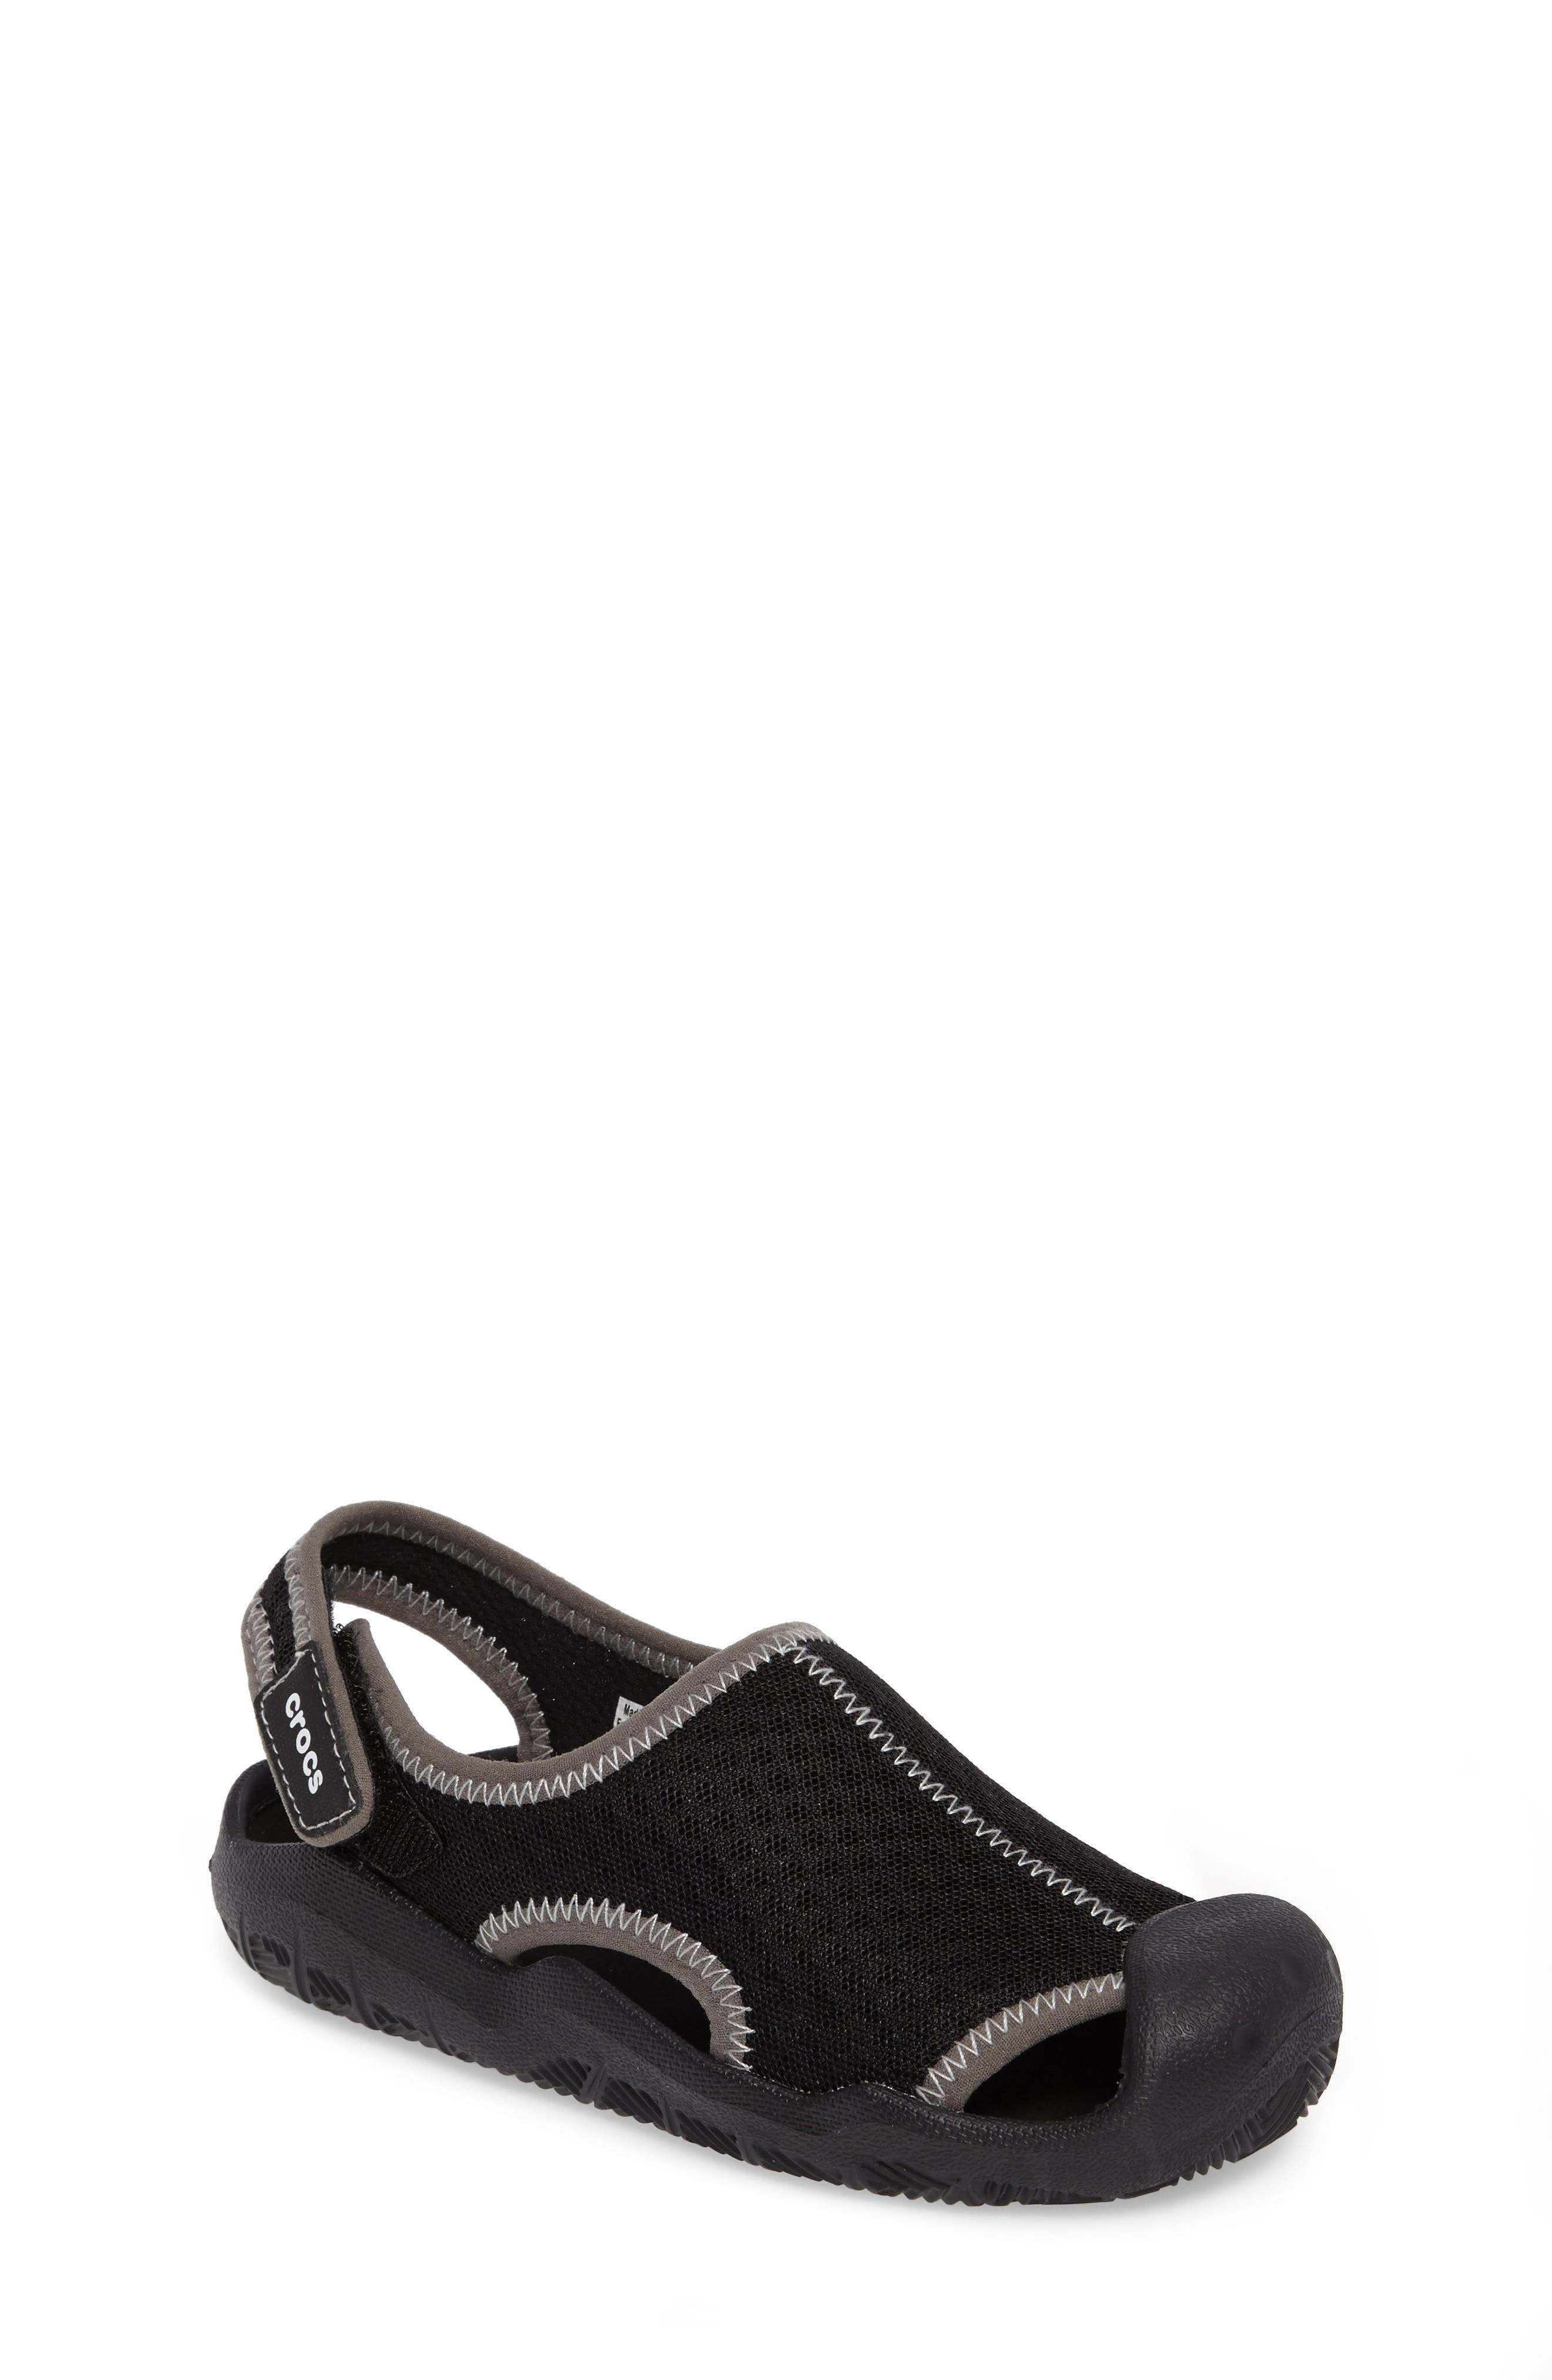 Image of Crocs Swiftwater Sandal